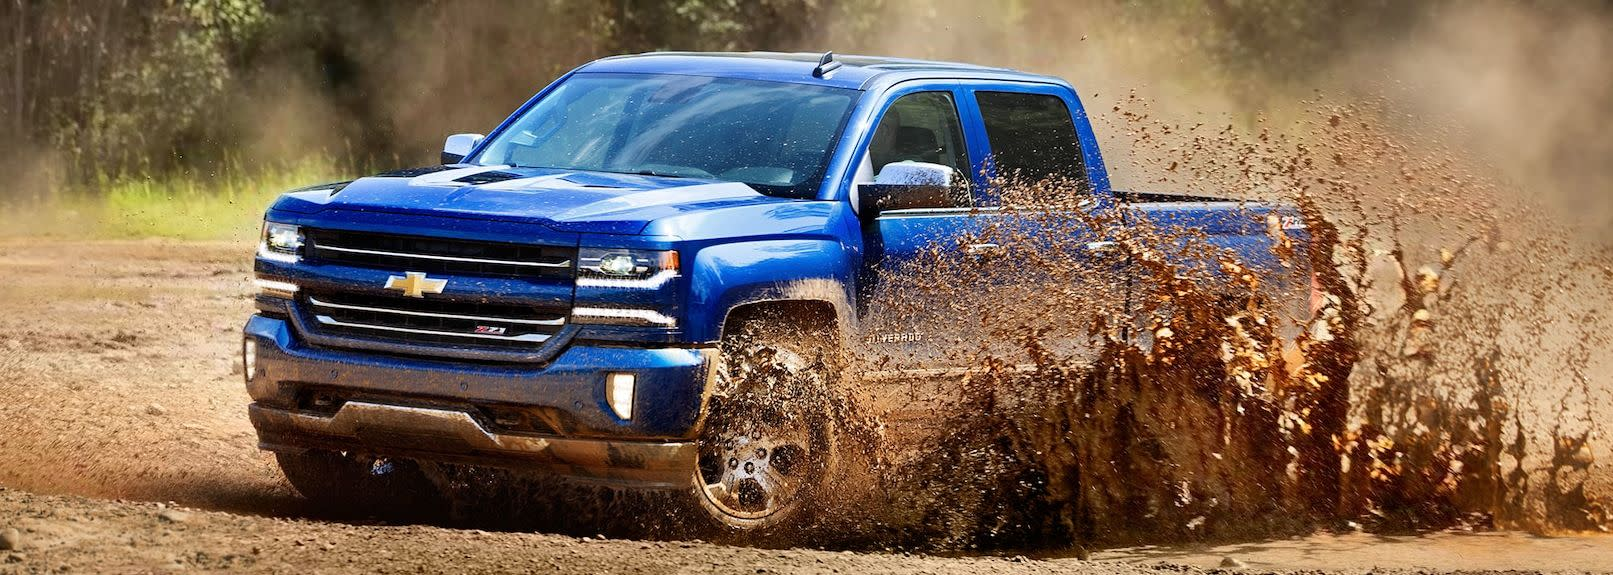 2019 Chevrolet Silverado 1500 Leasing near Washington, DC